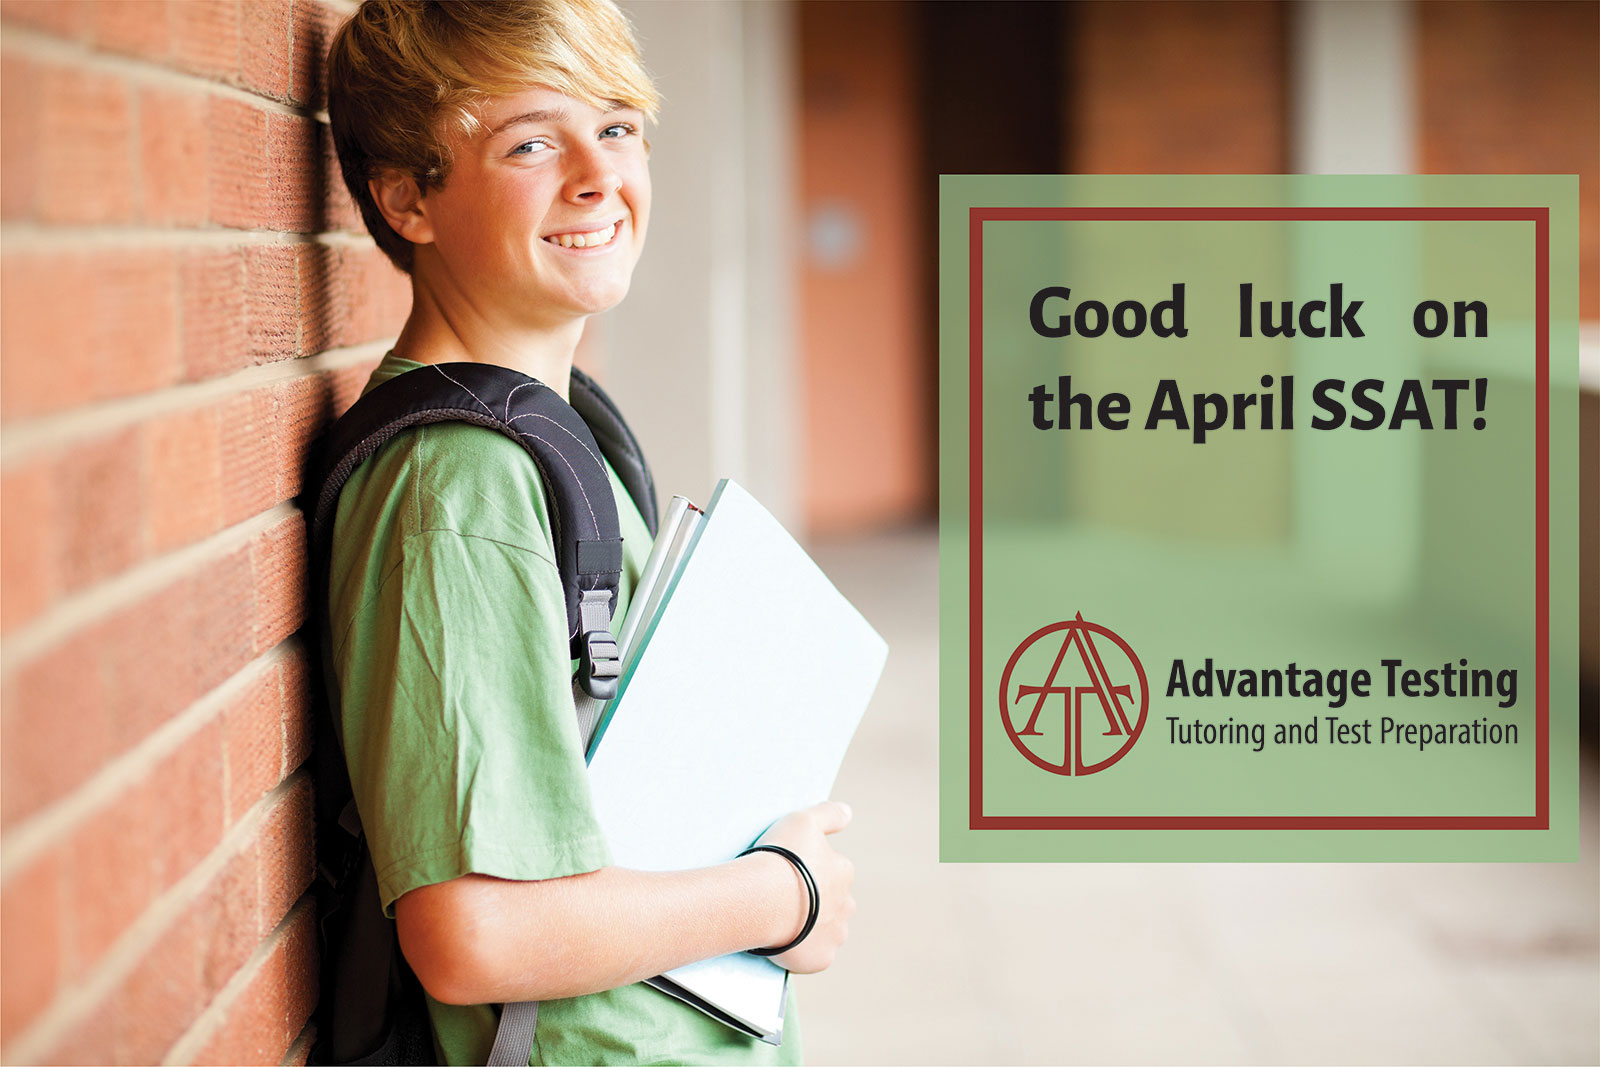 Good luck to everyone taking the SSAT this weekend!